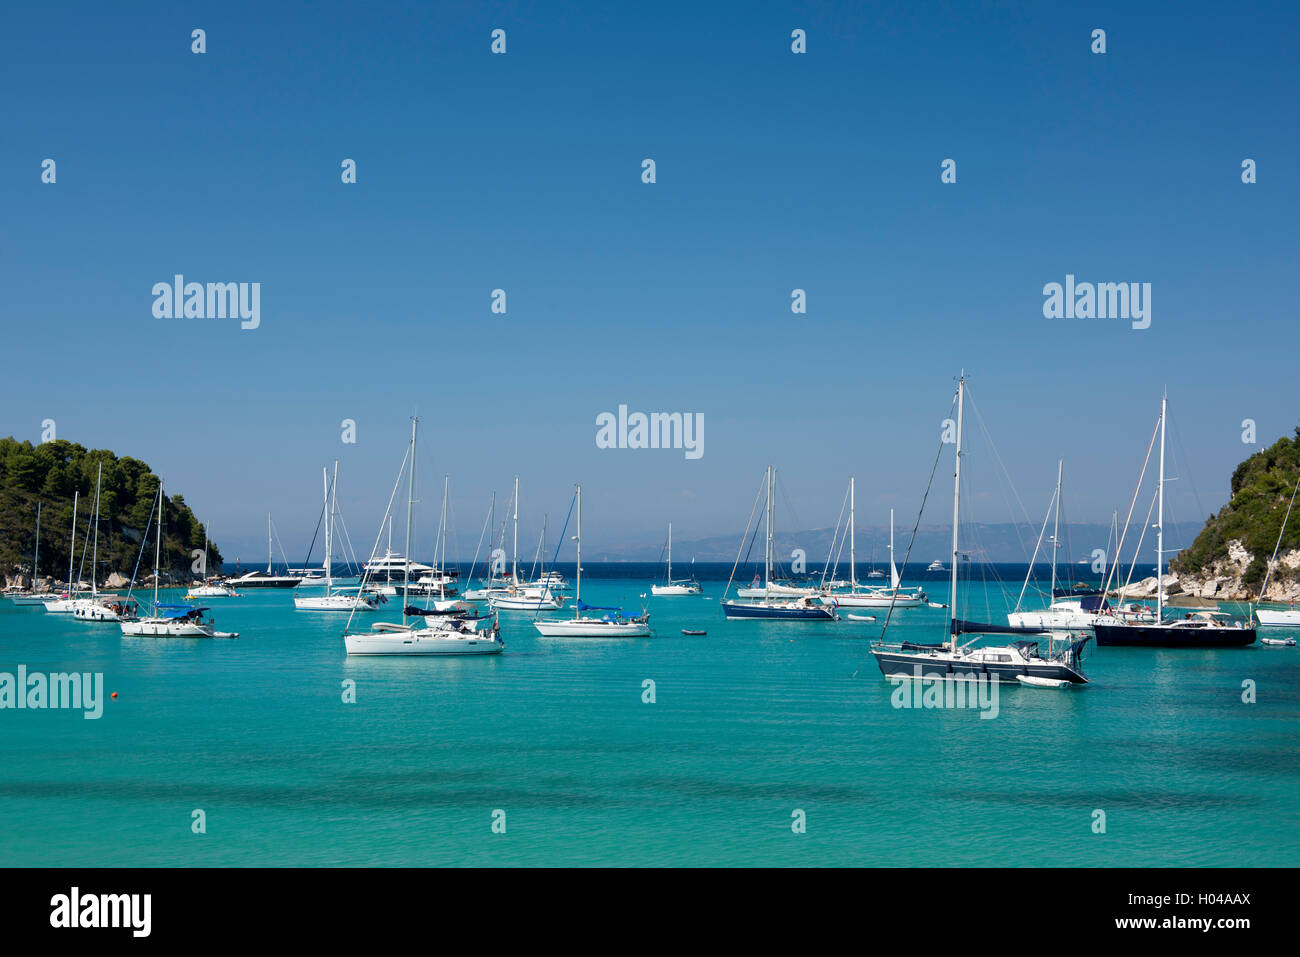 Sailing yachts moored in Lakka harbour on the island of Paxos, The Ionian Islands, The Greek Islands, Greece, Europe - Stock Image